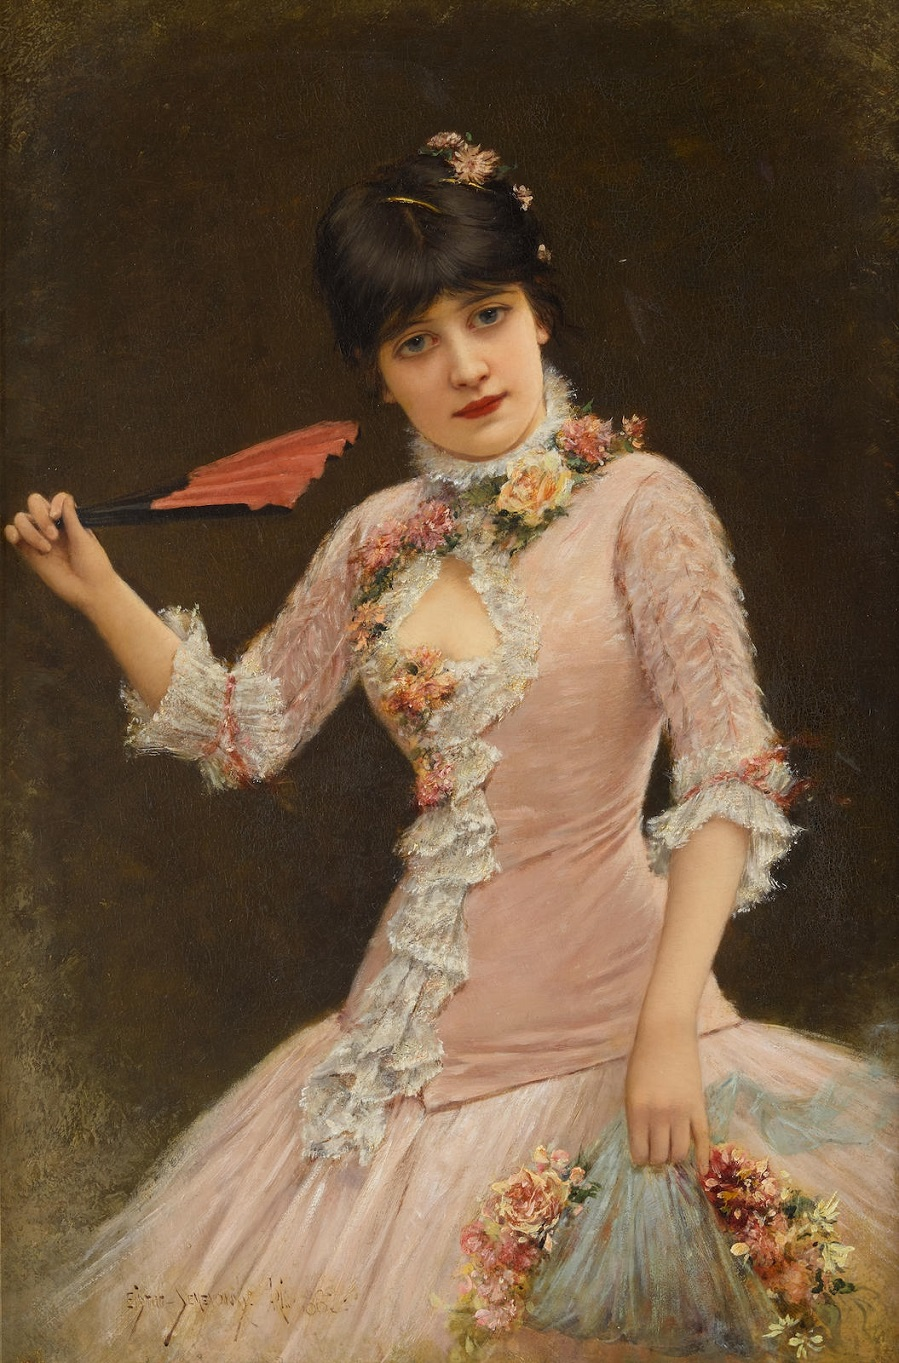 A Portrait of a Young Lady in Pink Dress